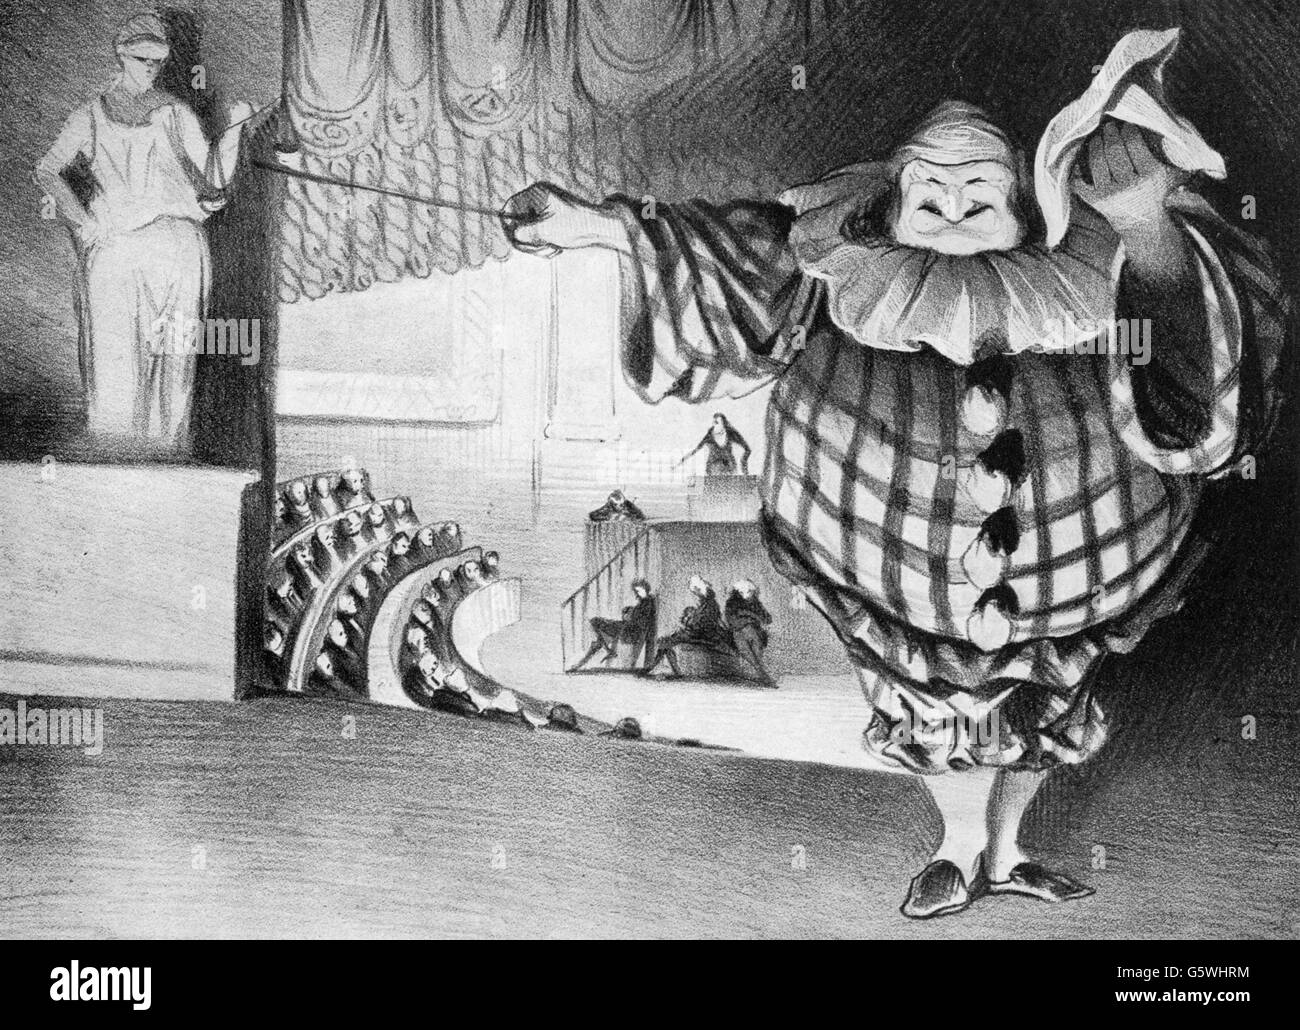 Louis Philippe I, 6.10.1773 - 26. 8.1850, king of the French 7.8.1830 - 24.2.1848, as clown lowering the curtain - Stock Image